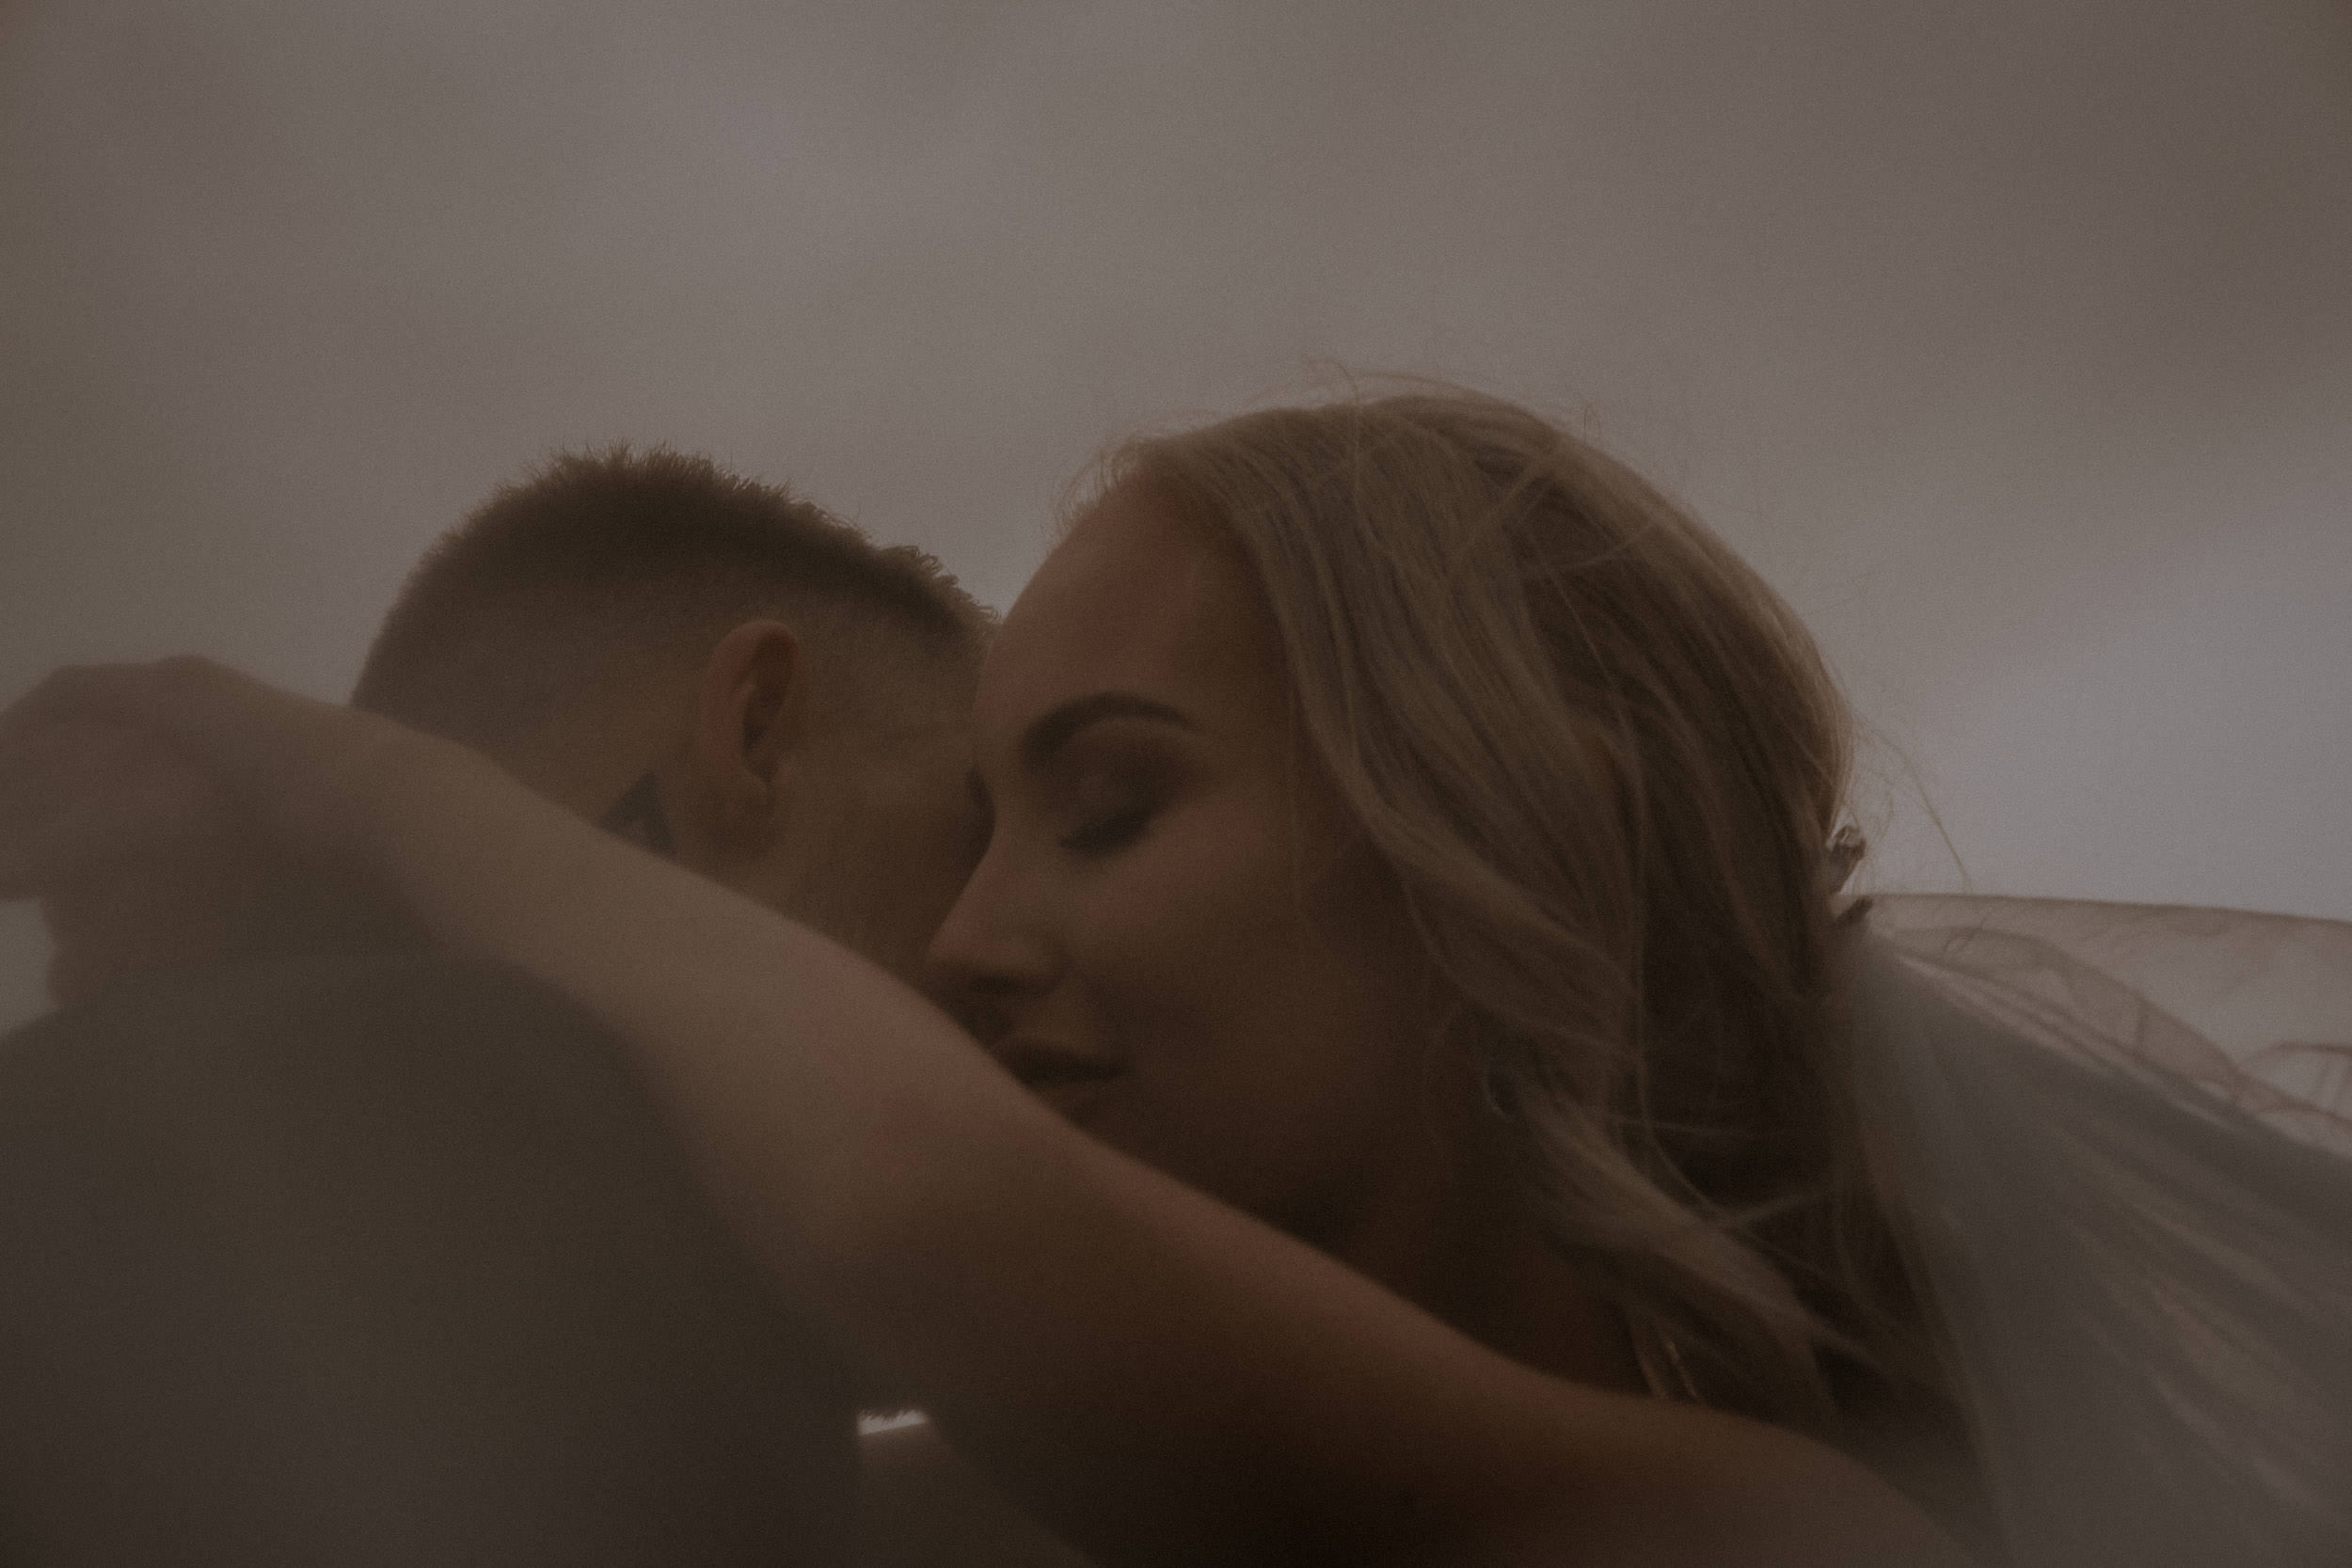 An intimate frame of a newly married bride and groom at Bradley's Head, on Sydney Harbour, at sunset